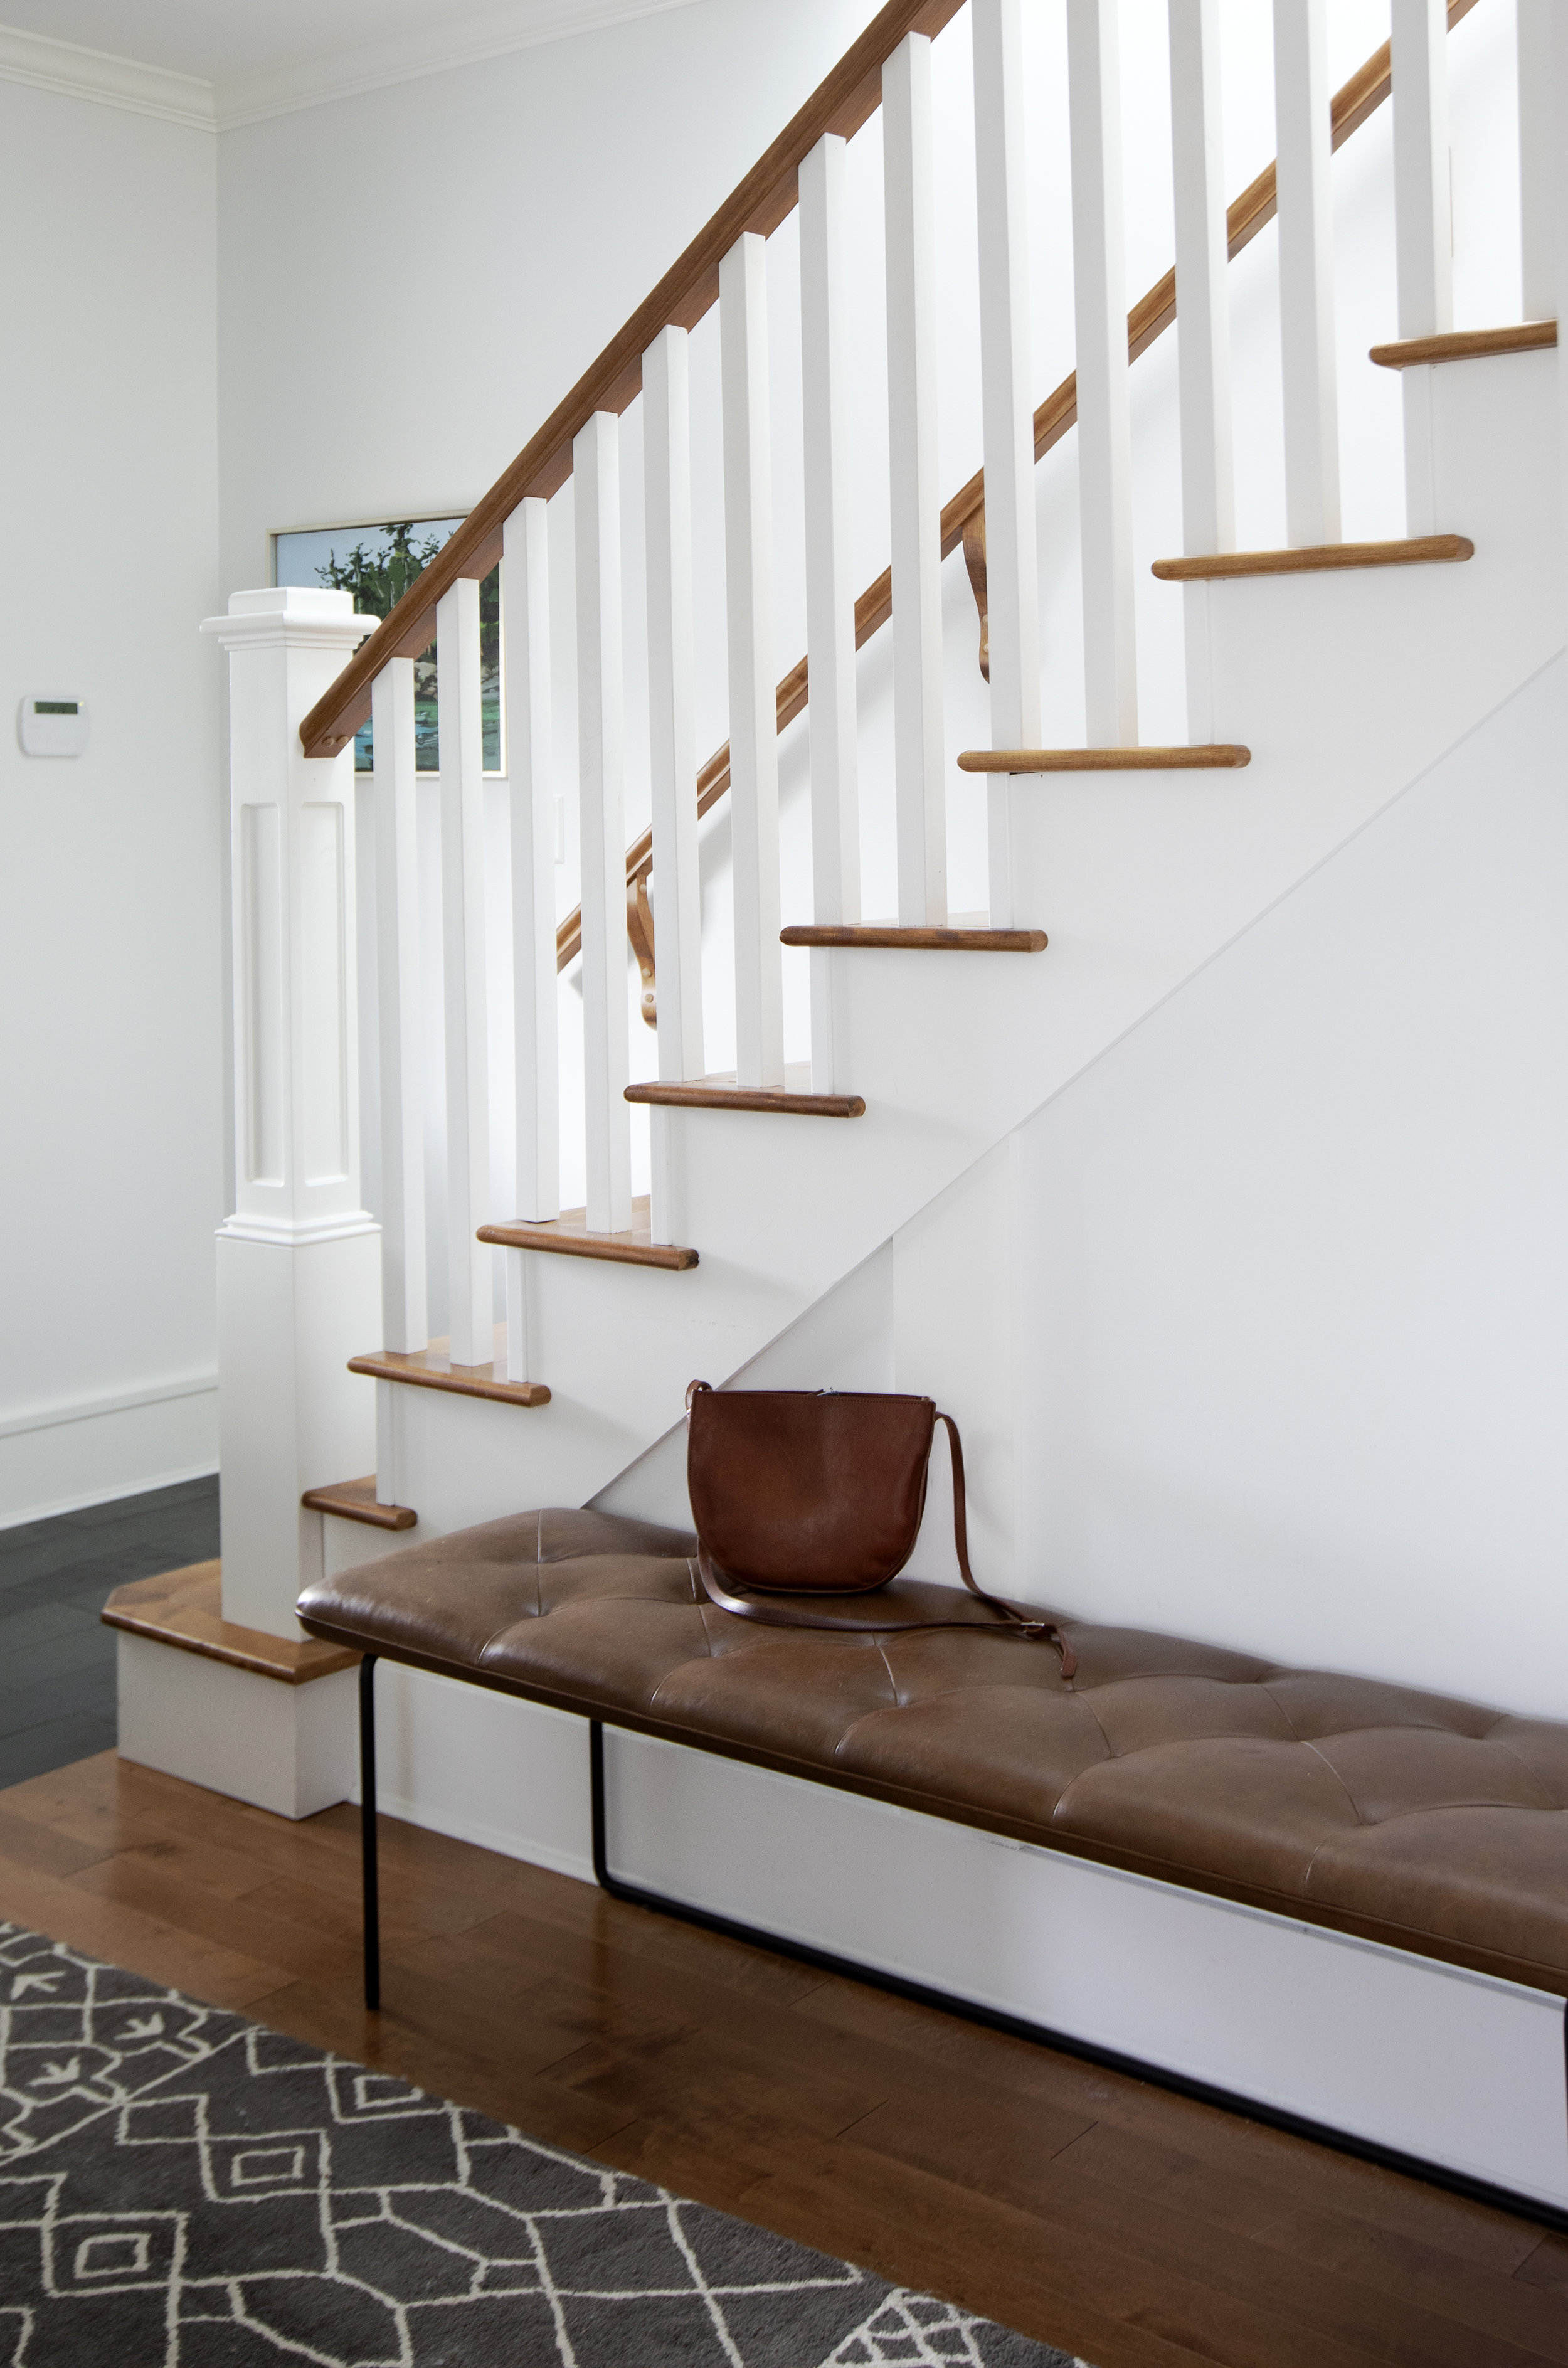 A large leather bench sits below the white and wooden staircase.